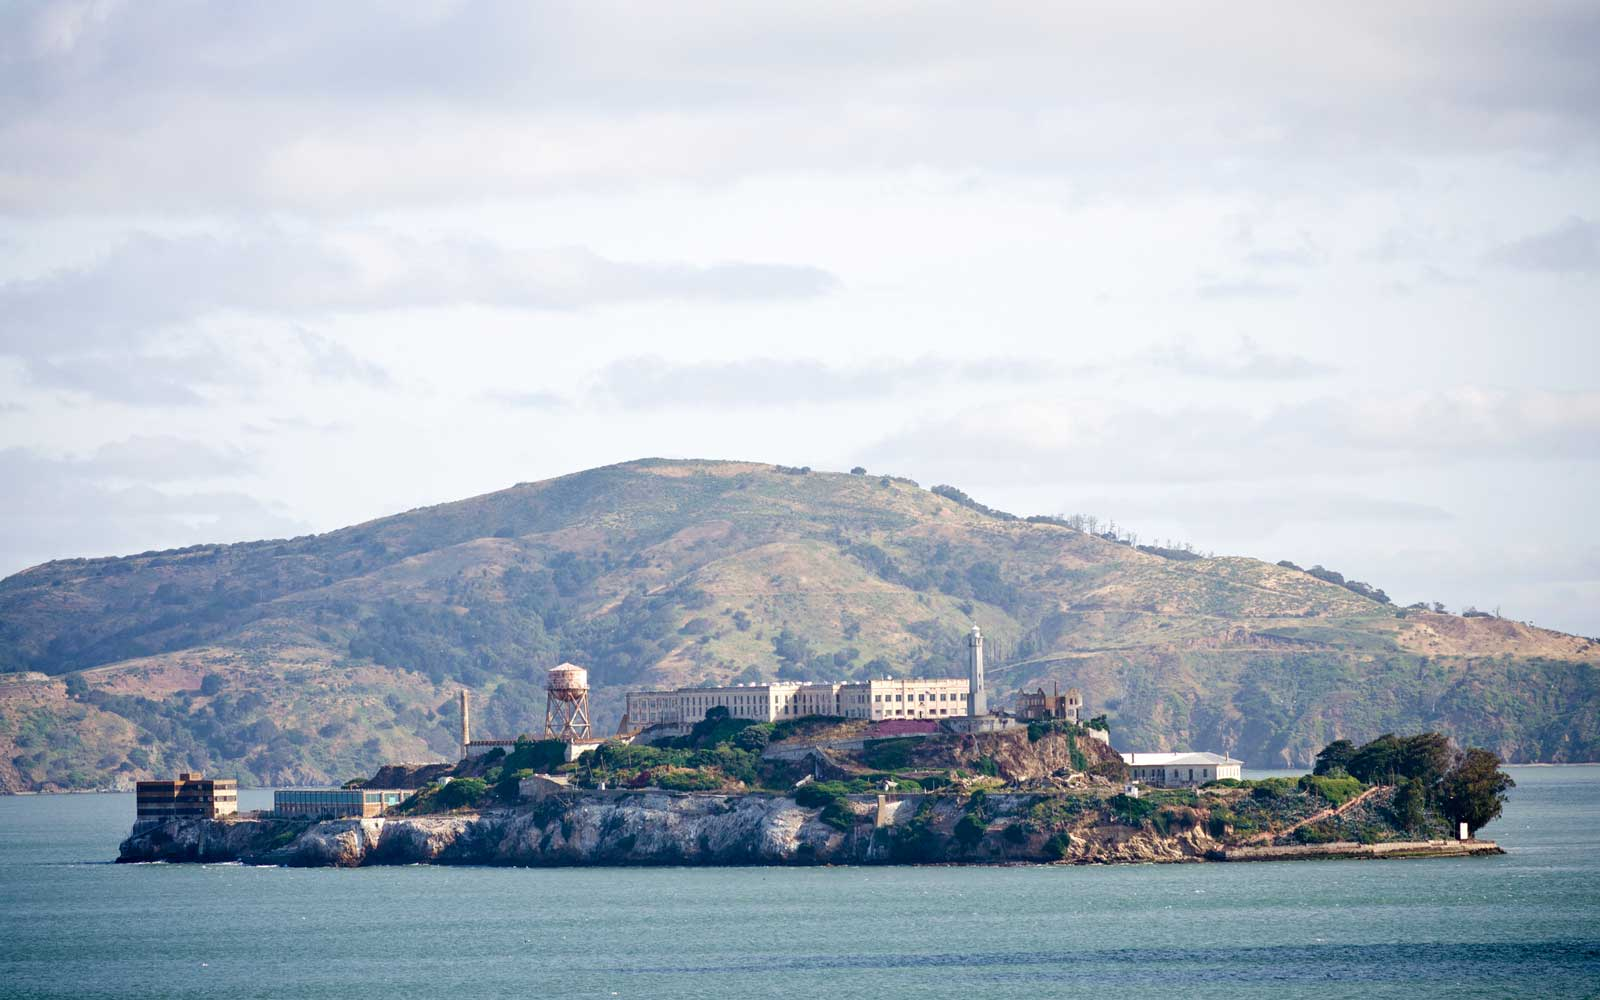 Travelers to Alcatraz Island Now Have the Option to Visit a Second Island